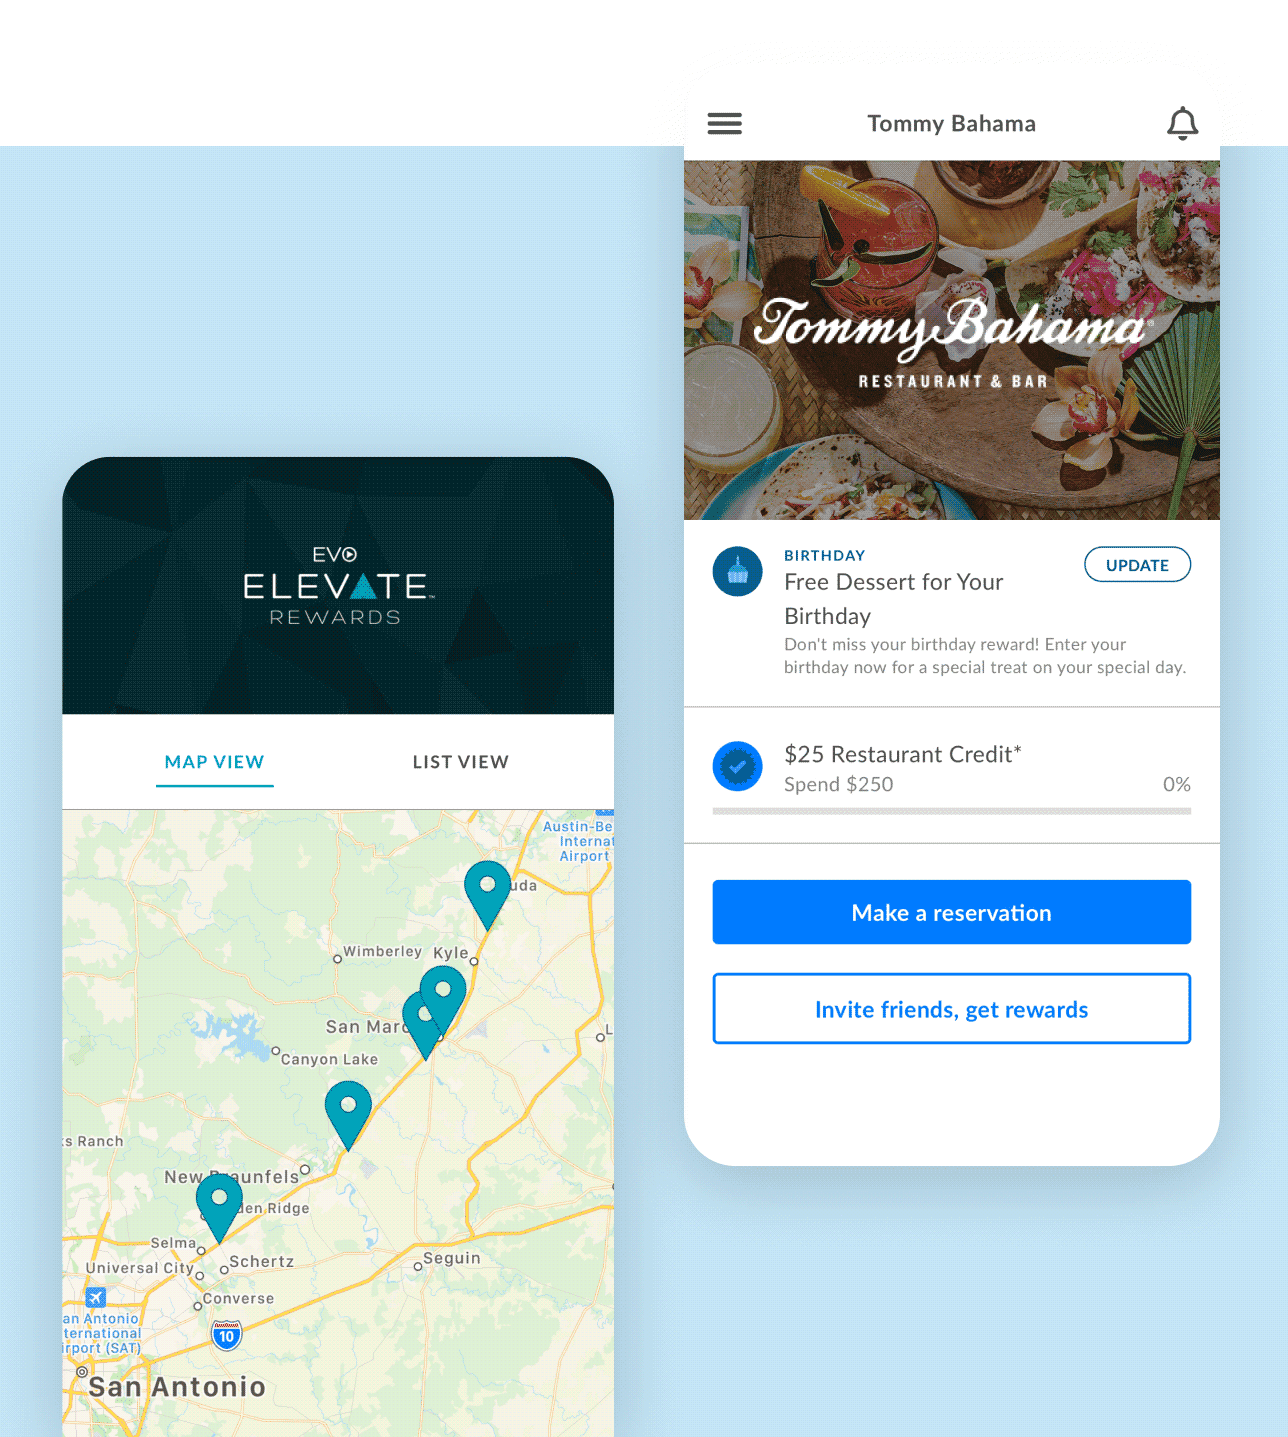 Screenshots of EVO and Tommy Bahama mobile apps by Thanx